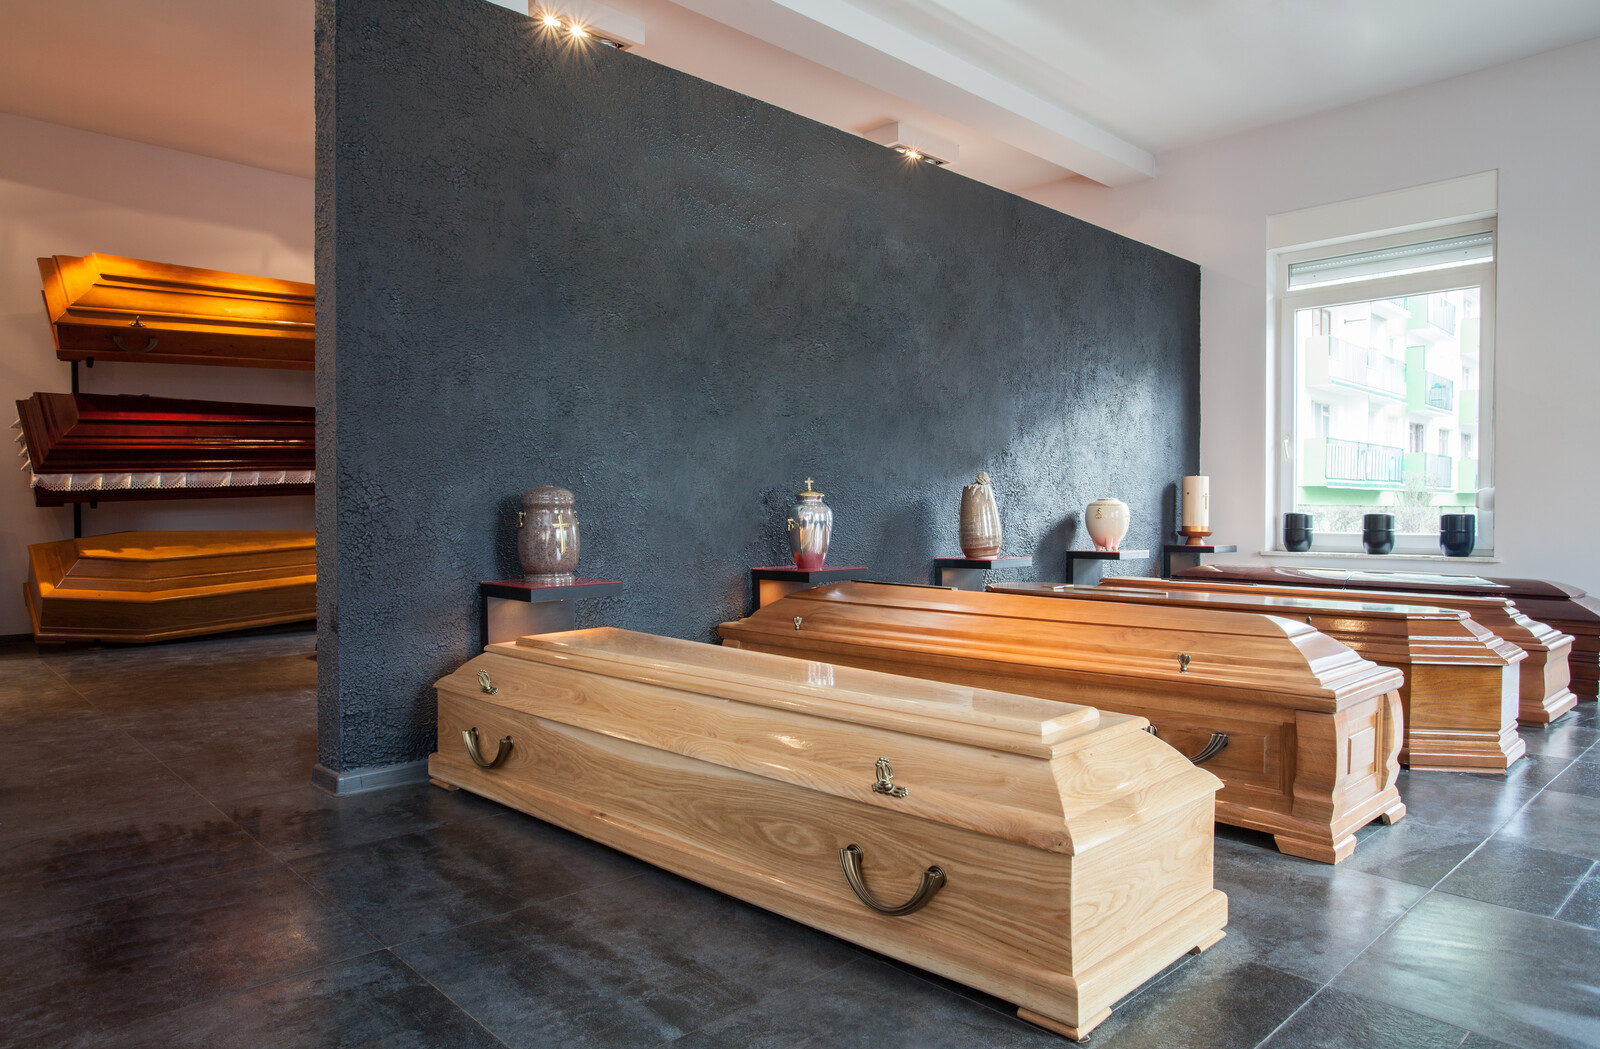 Funeral home showroom with caskets and urns